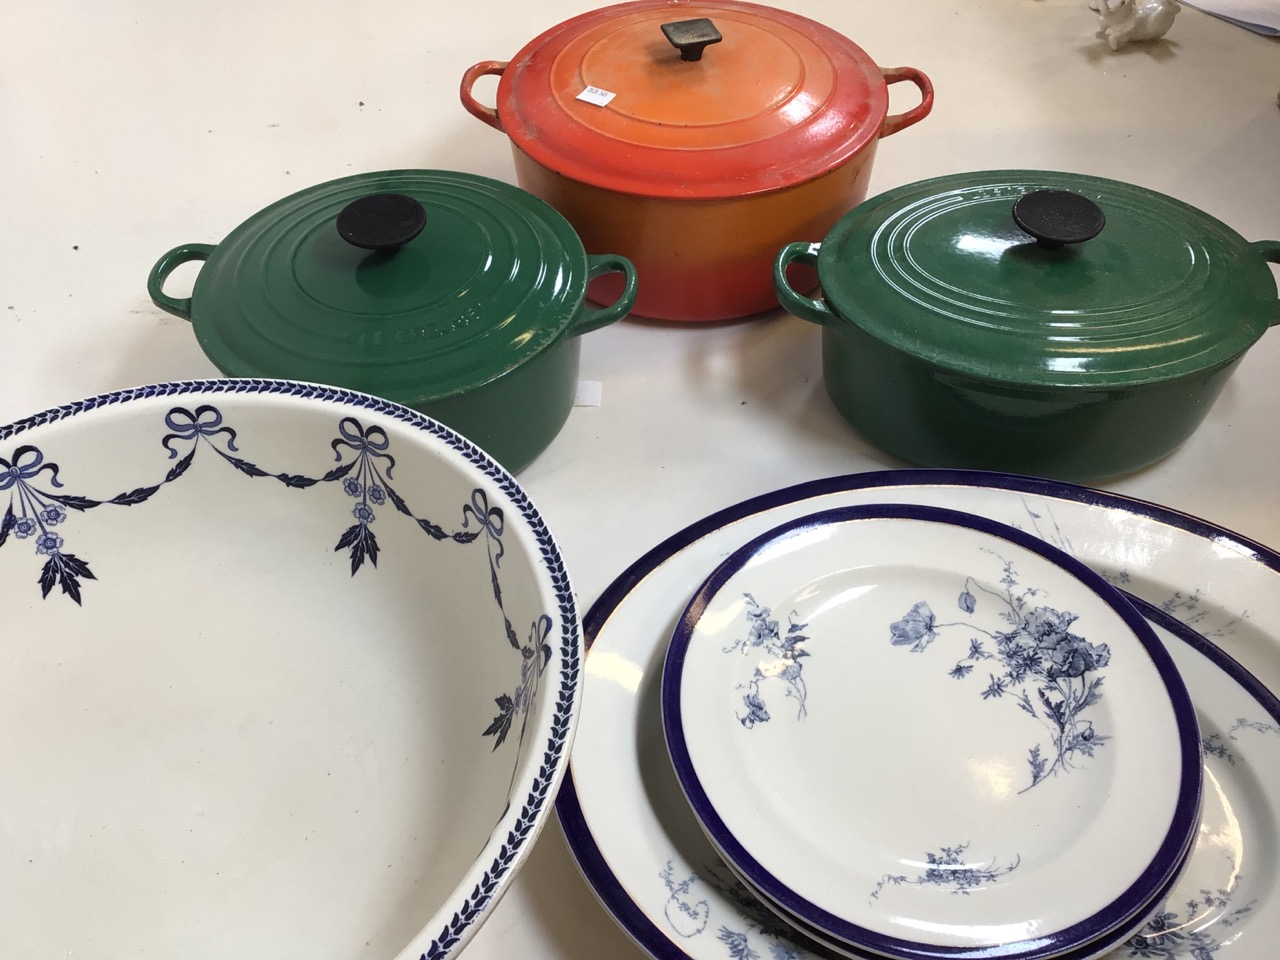 Le Creuset casserole dishes orange and green, Worcester blue and white plates also with a blue and